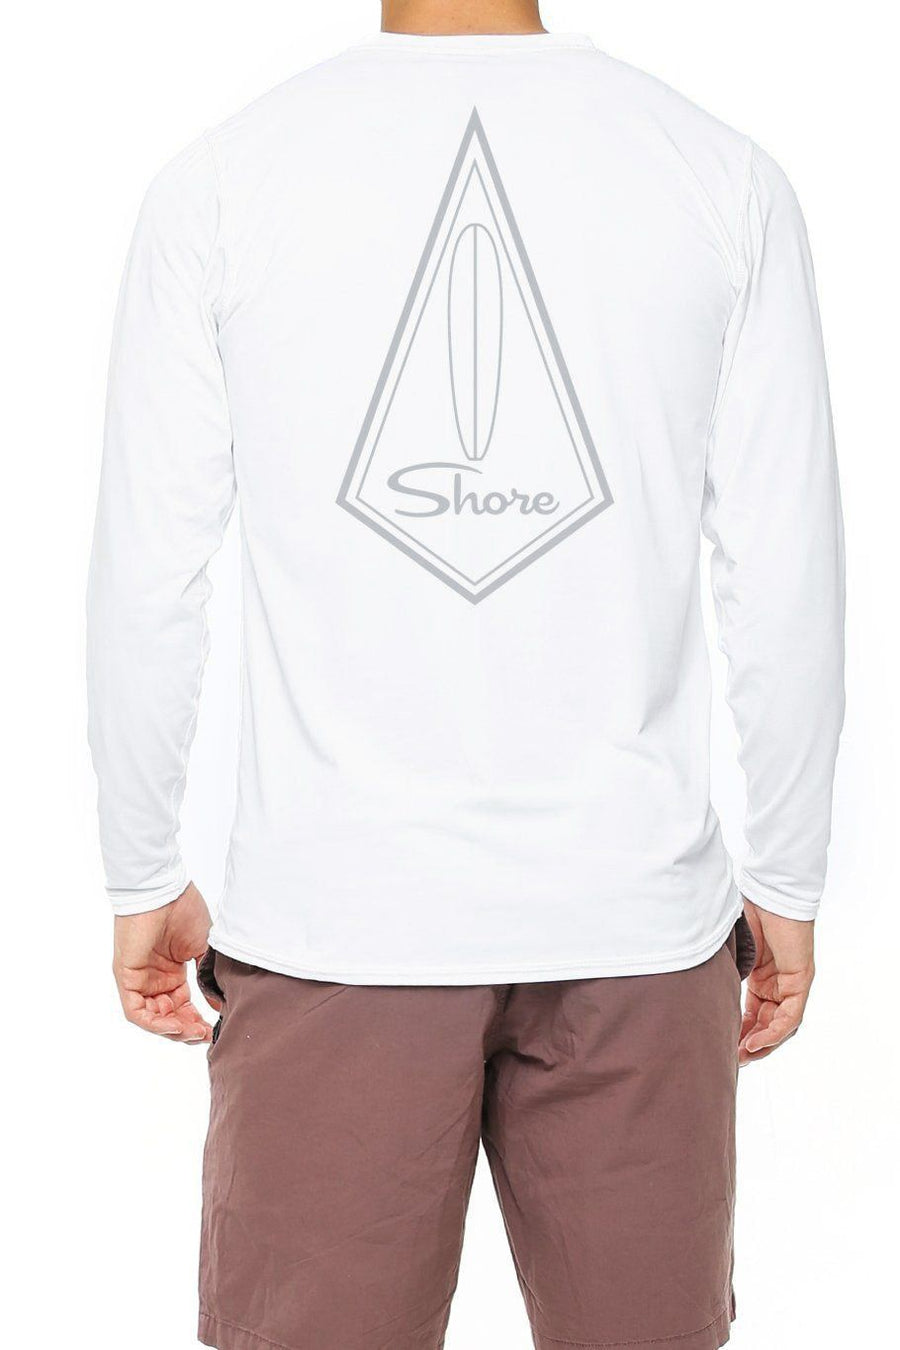 Long Sleeve Rashguard - Shore Diamond - Shore